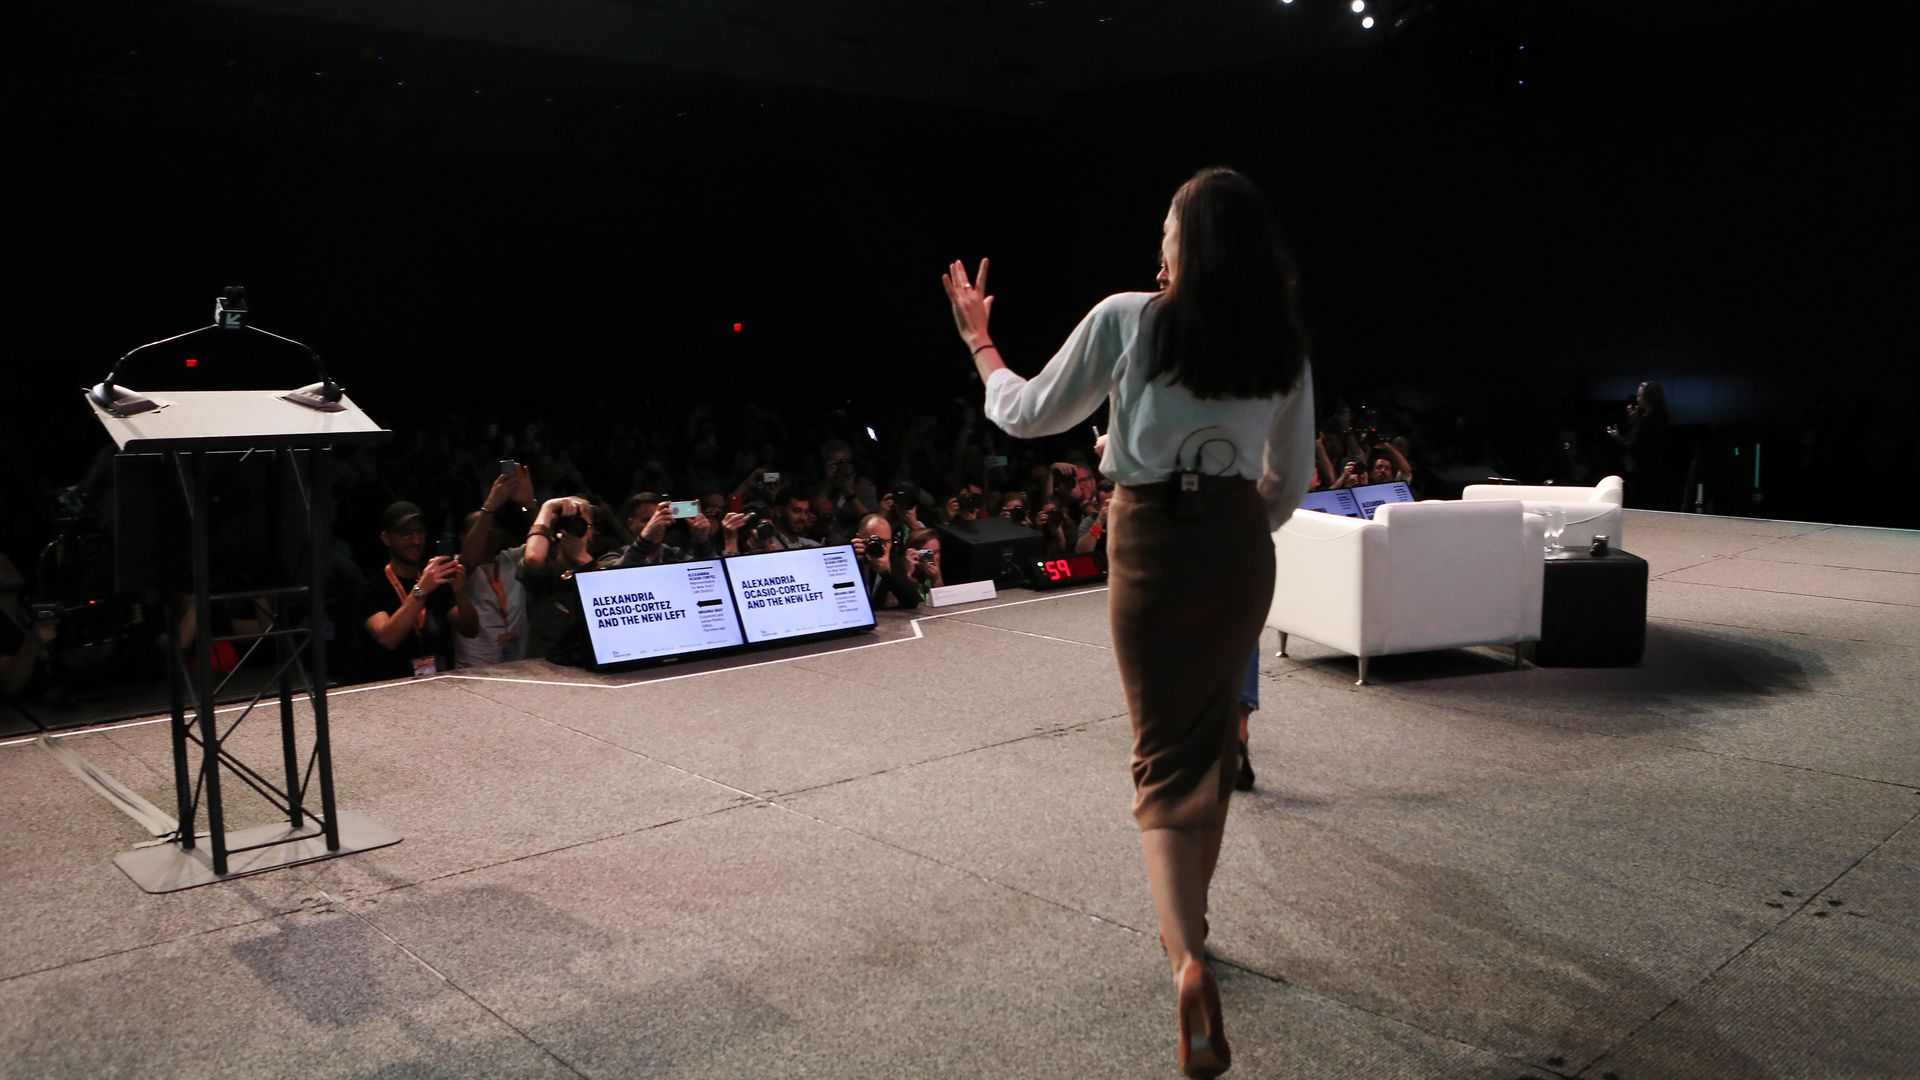 AOC walks onstage at a conference